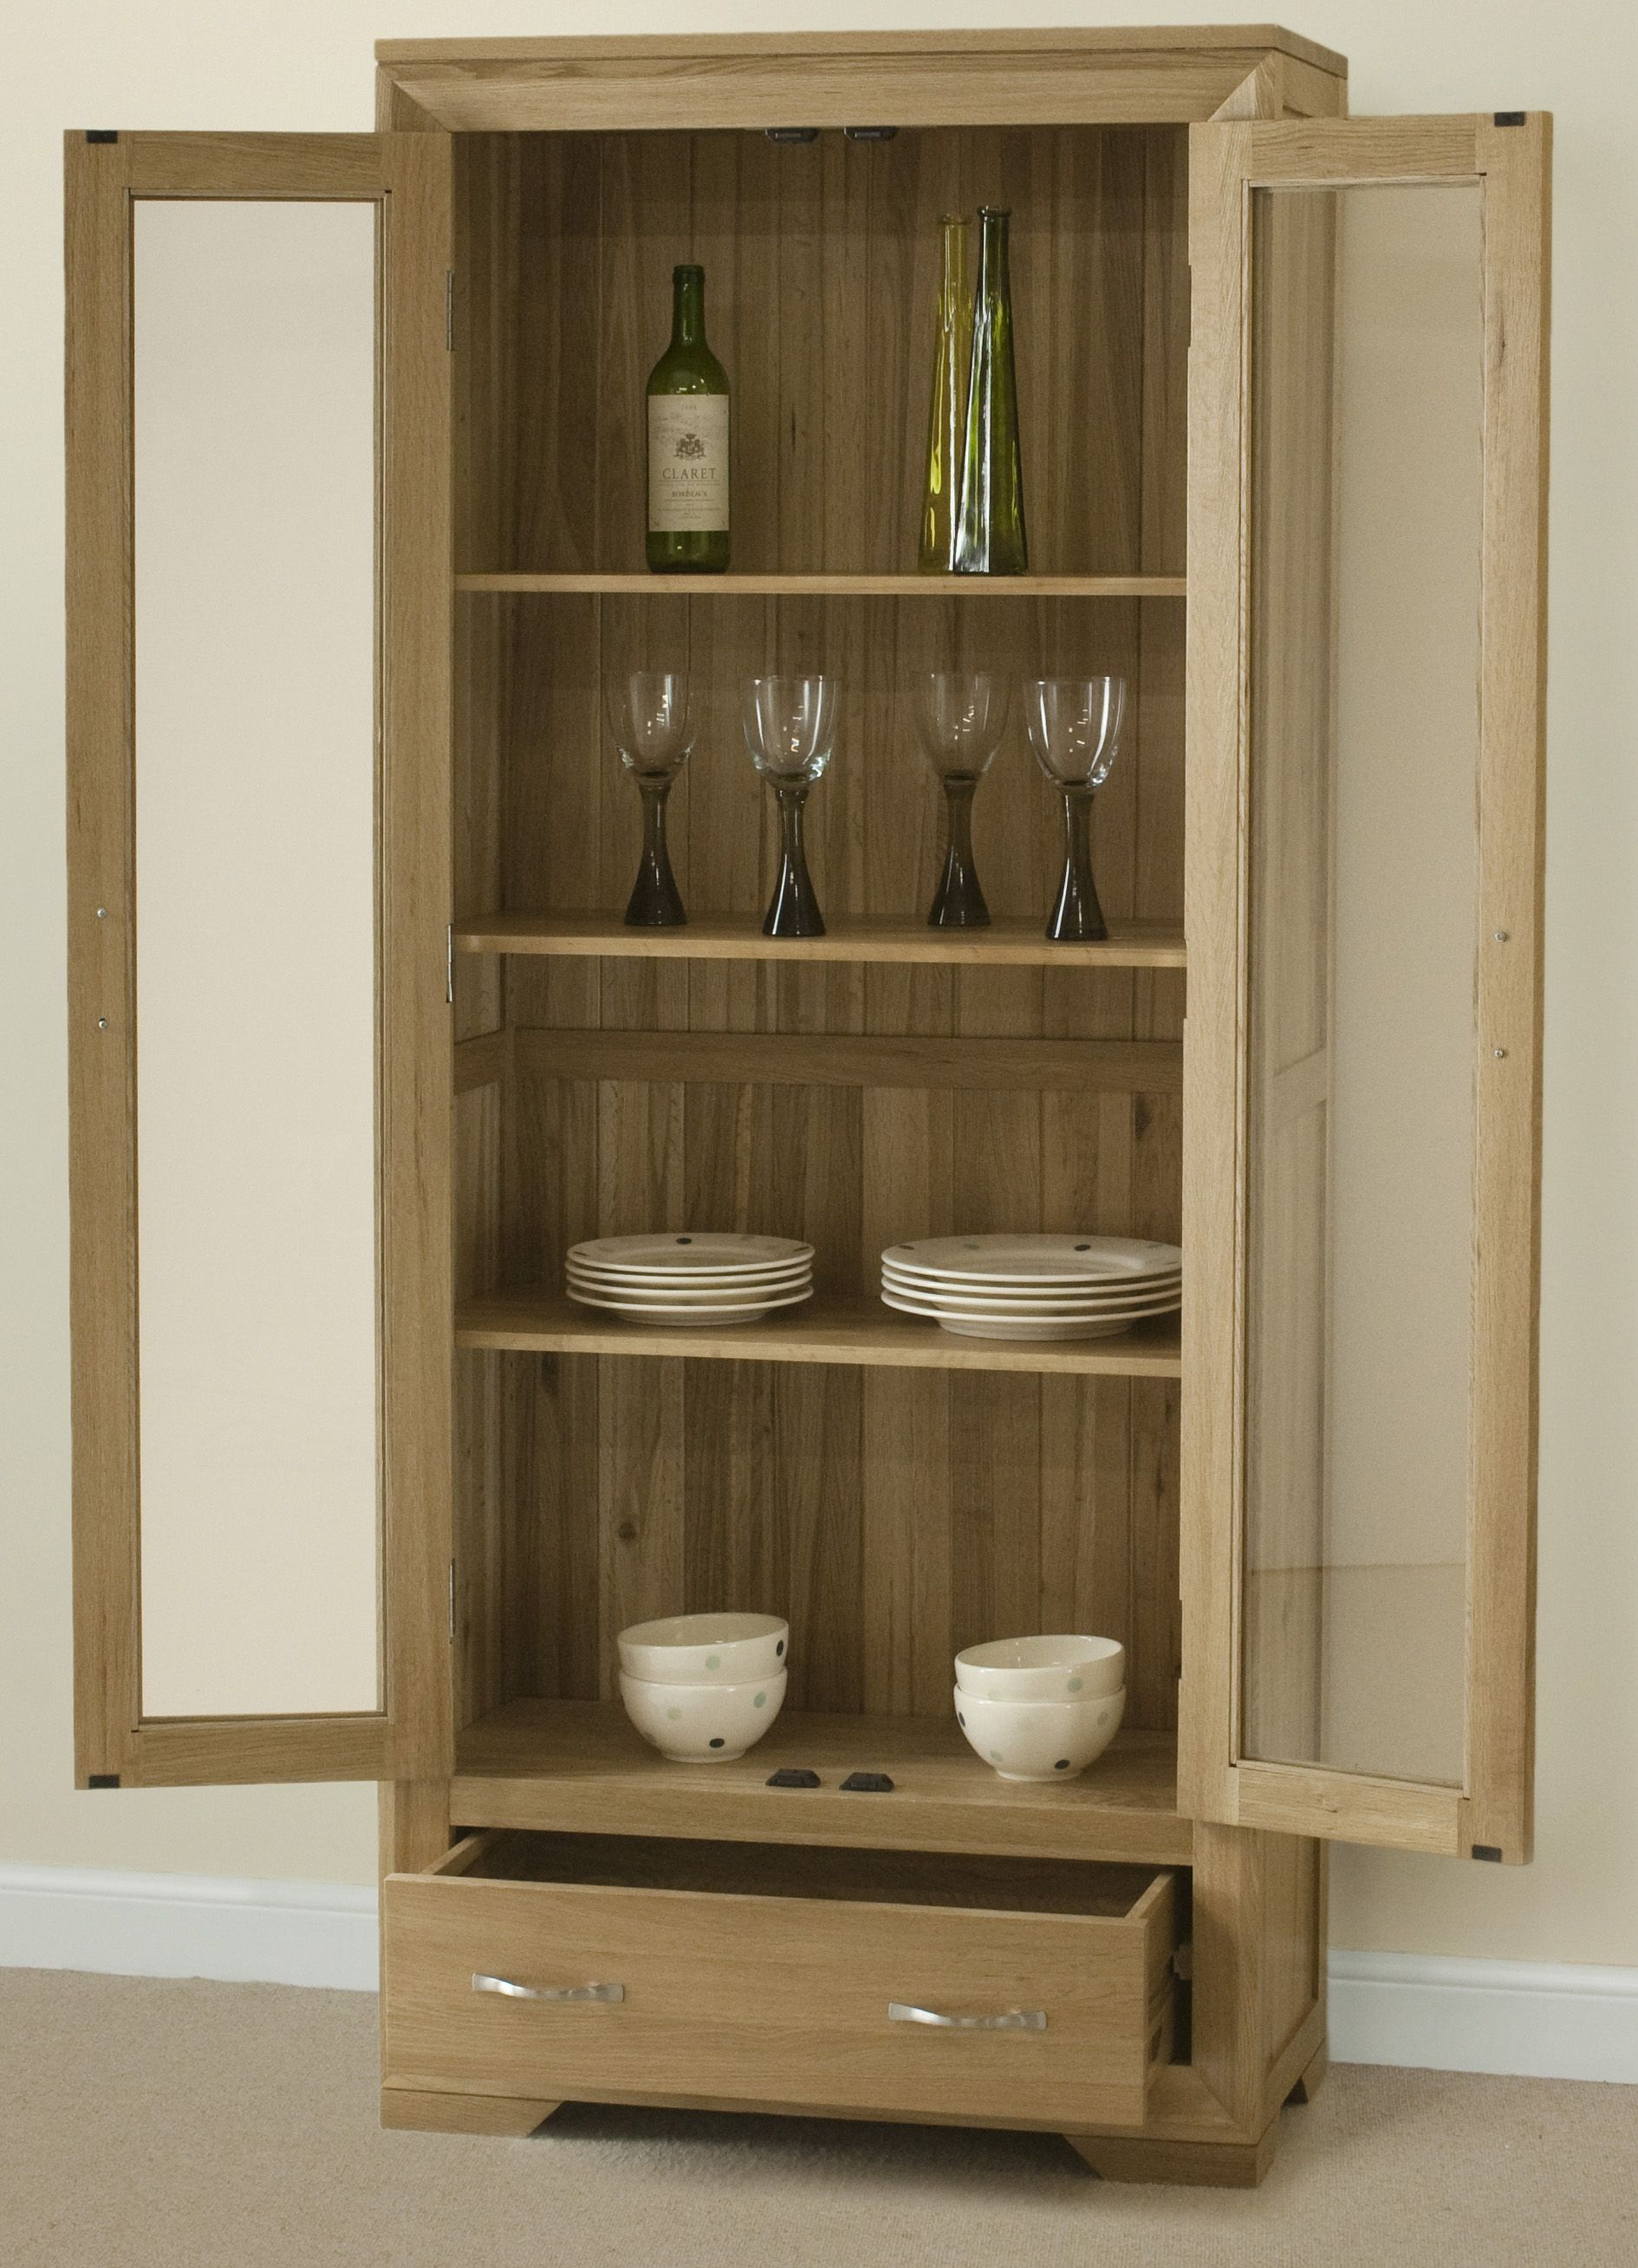 buffet l corner cabinets display livingurbanscape living with cabinet ideas room dining livings org innovative picture